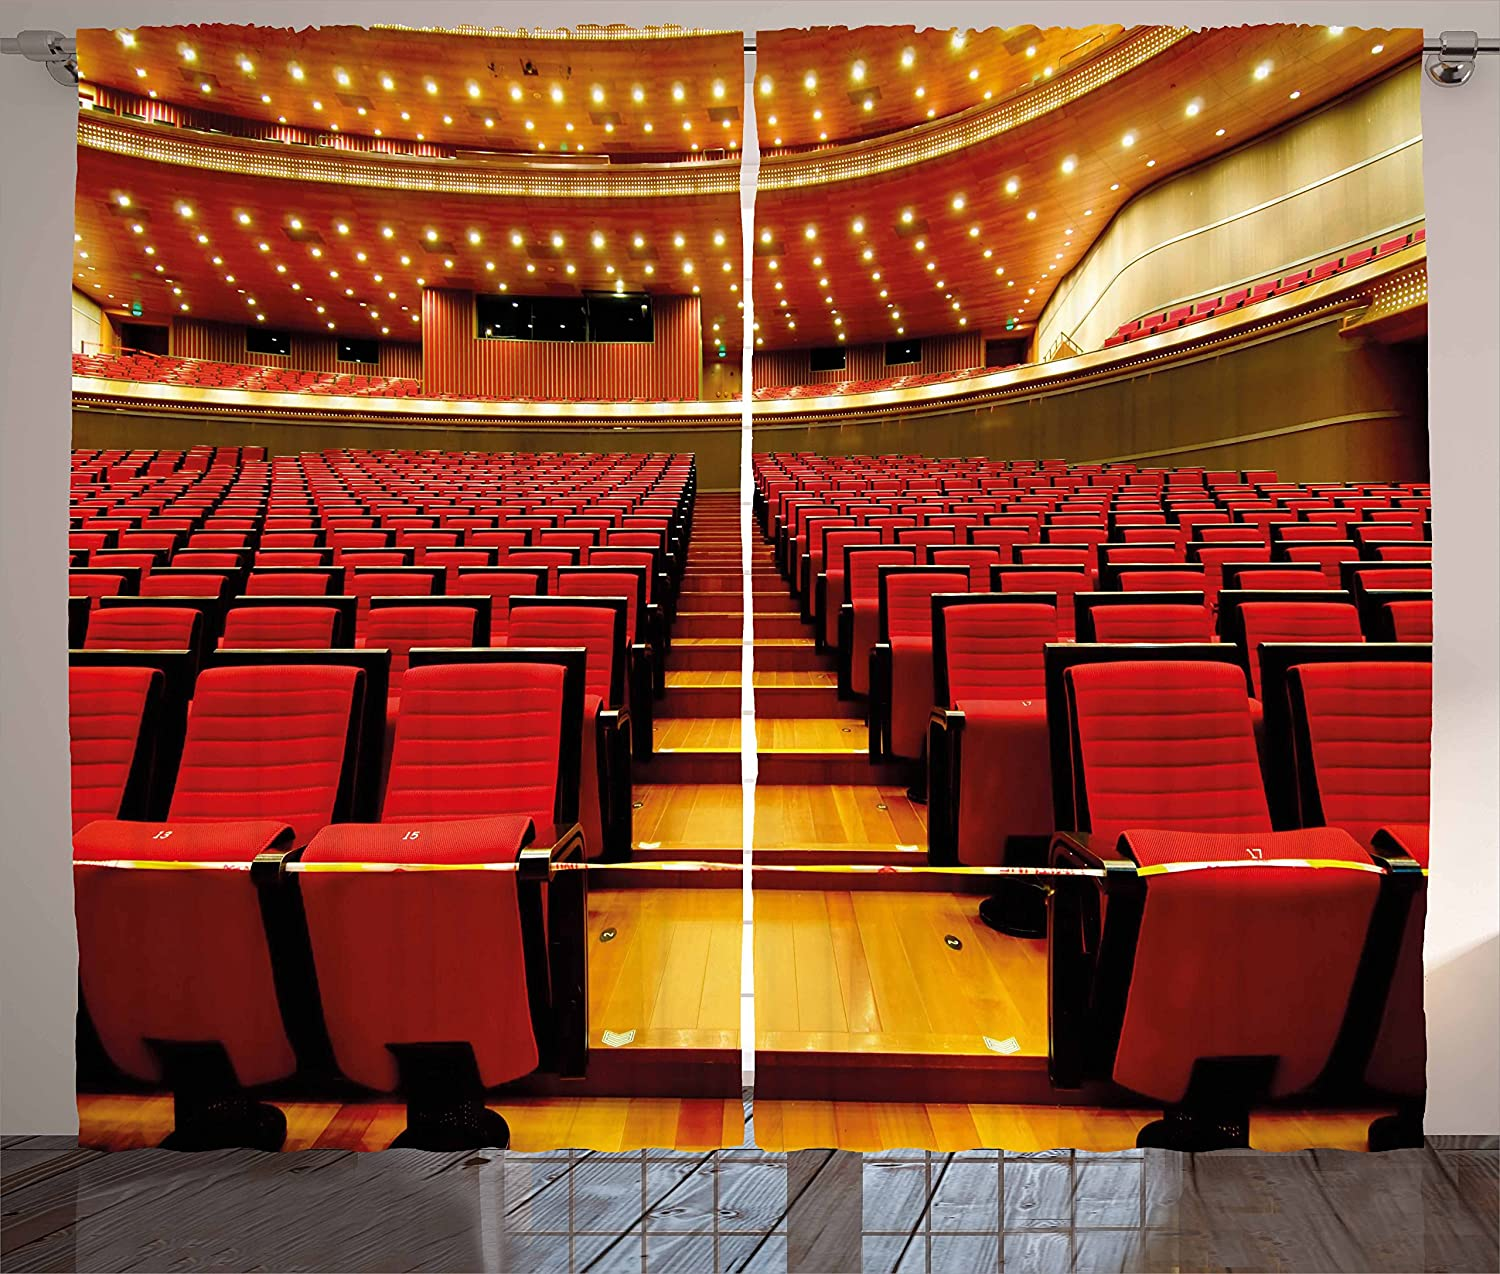 Musical Theatre Curtains China National Grand Theater Hall Chairs Auditorium Eastern Imagery Living Room Bedroom Window Drapes